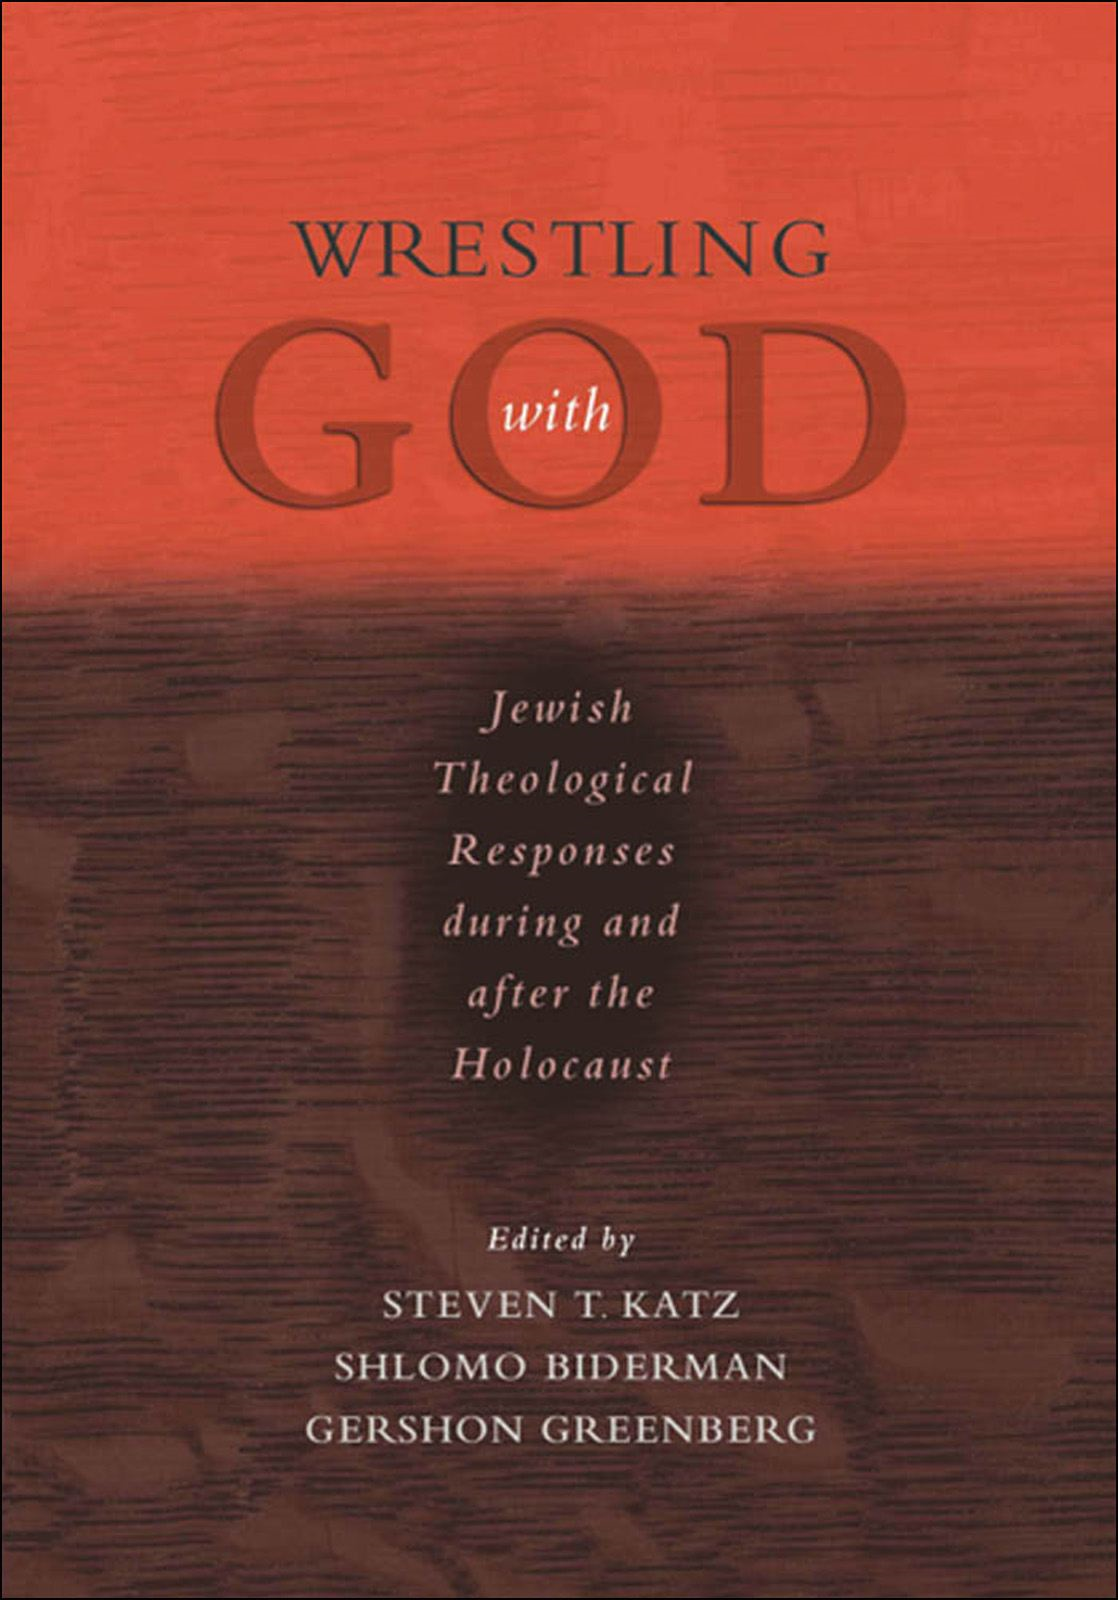 Wrestling with God : Jewish Theological Responses during and after the Holocaust